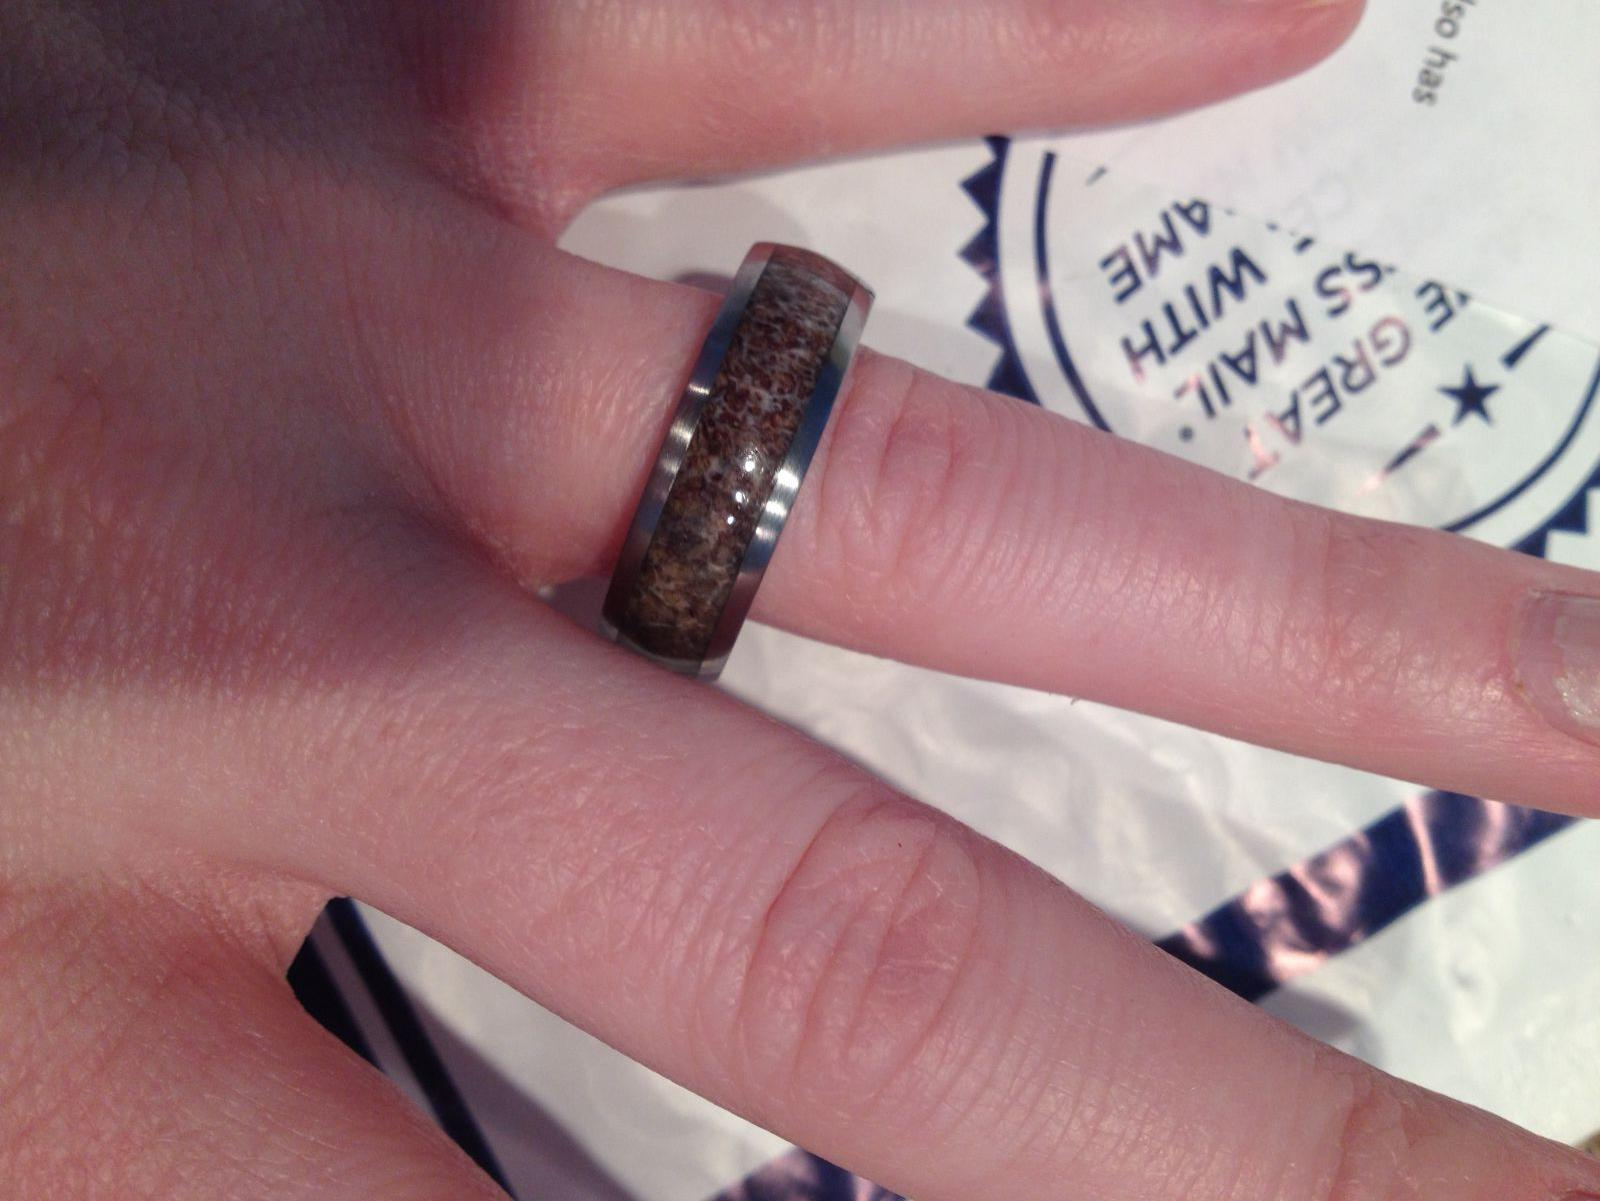 Mikes ring